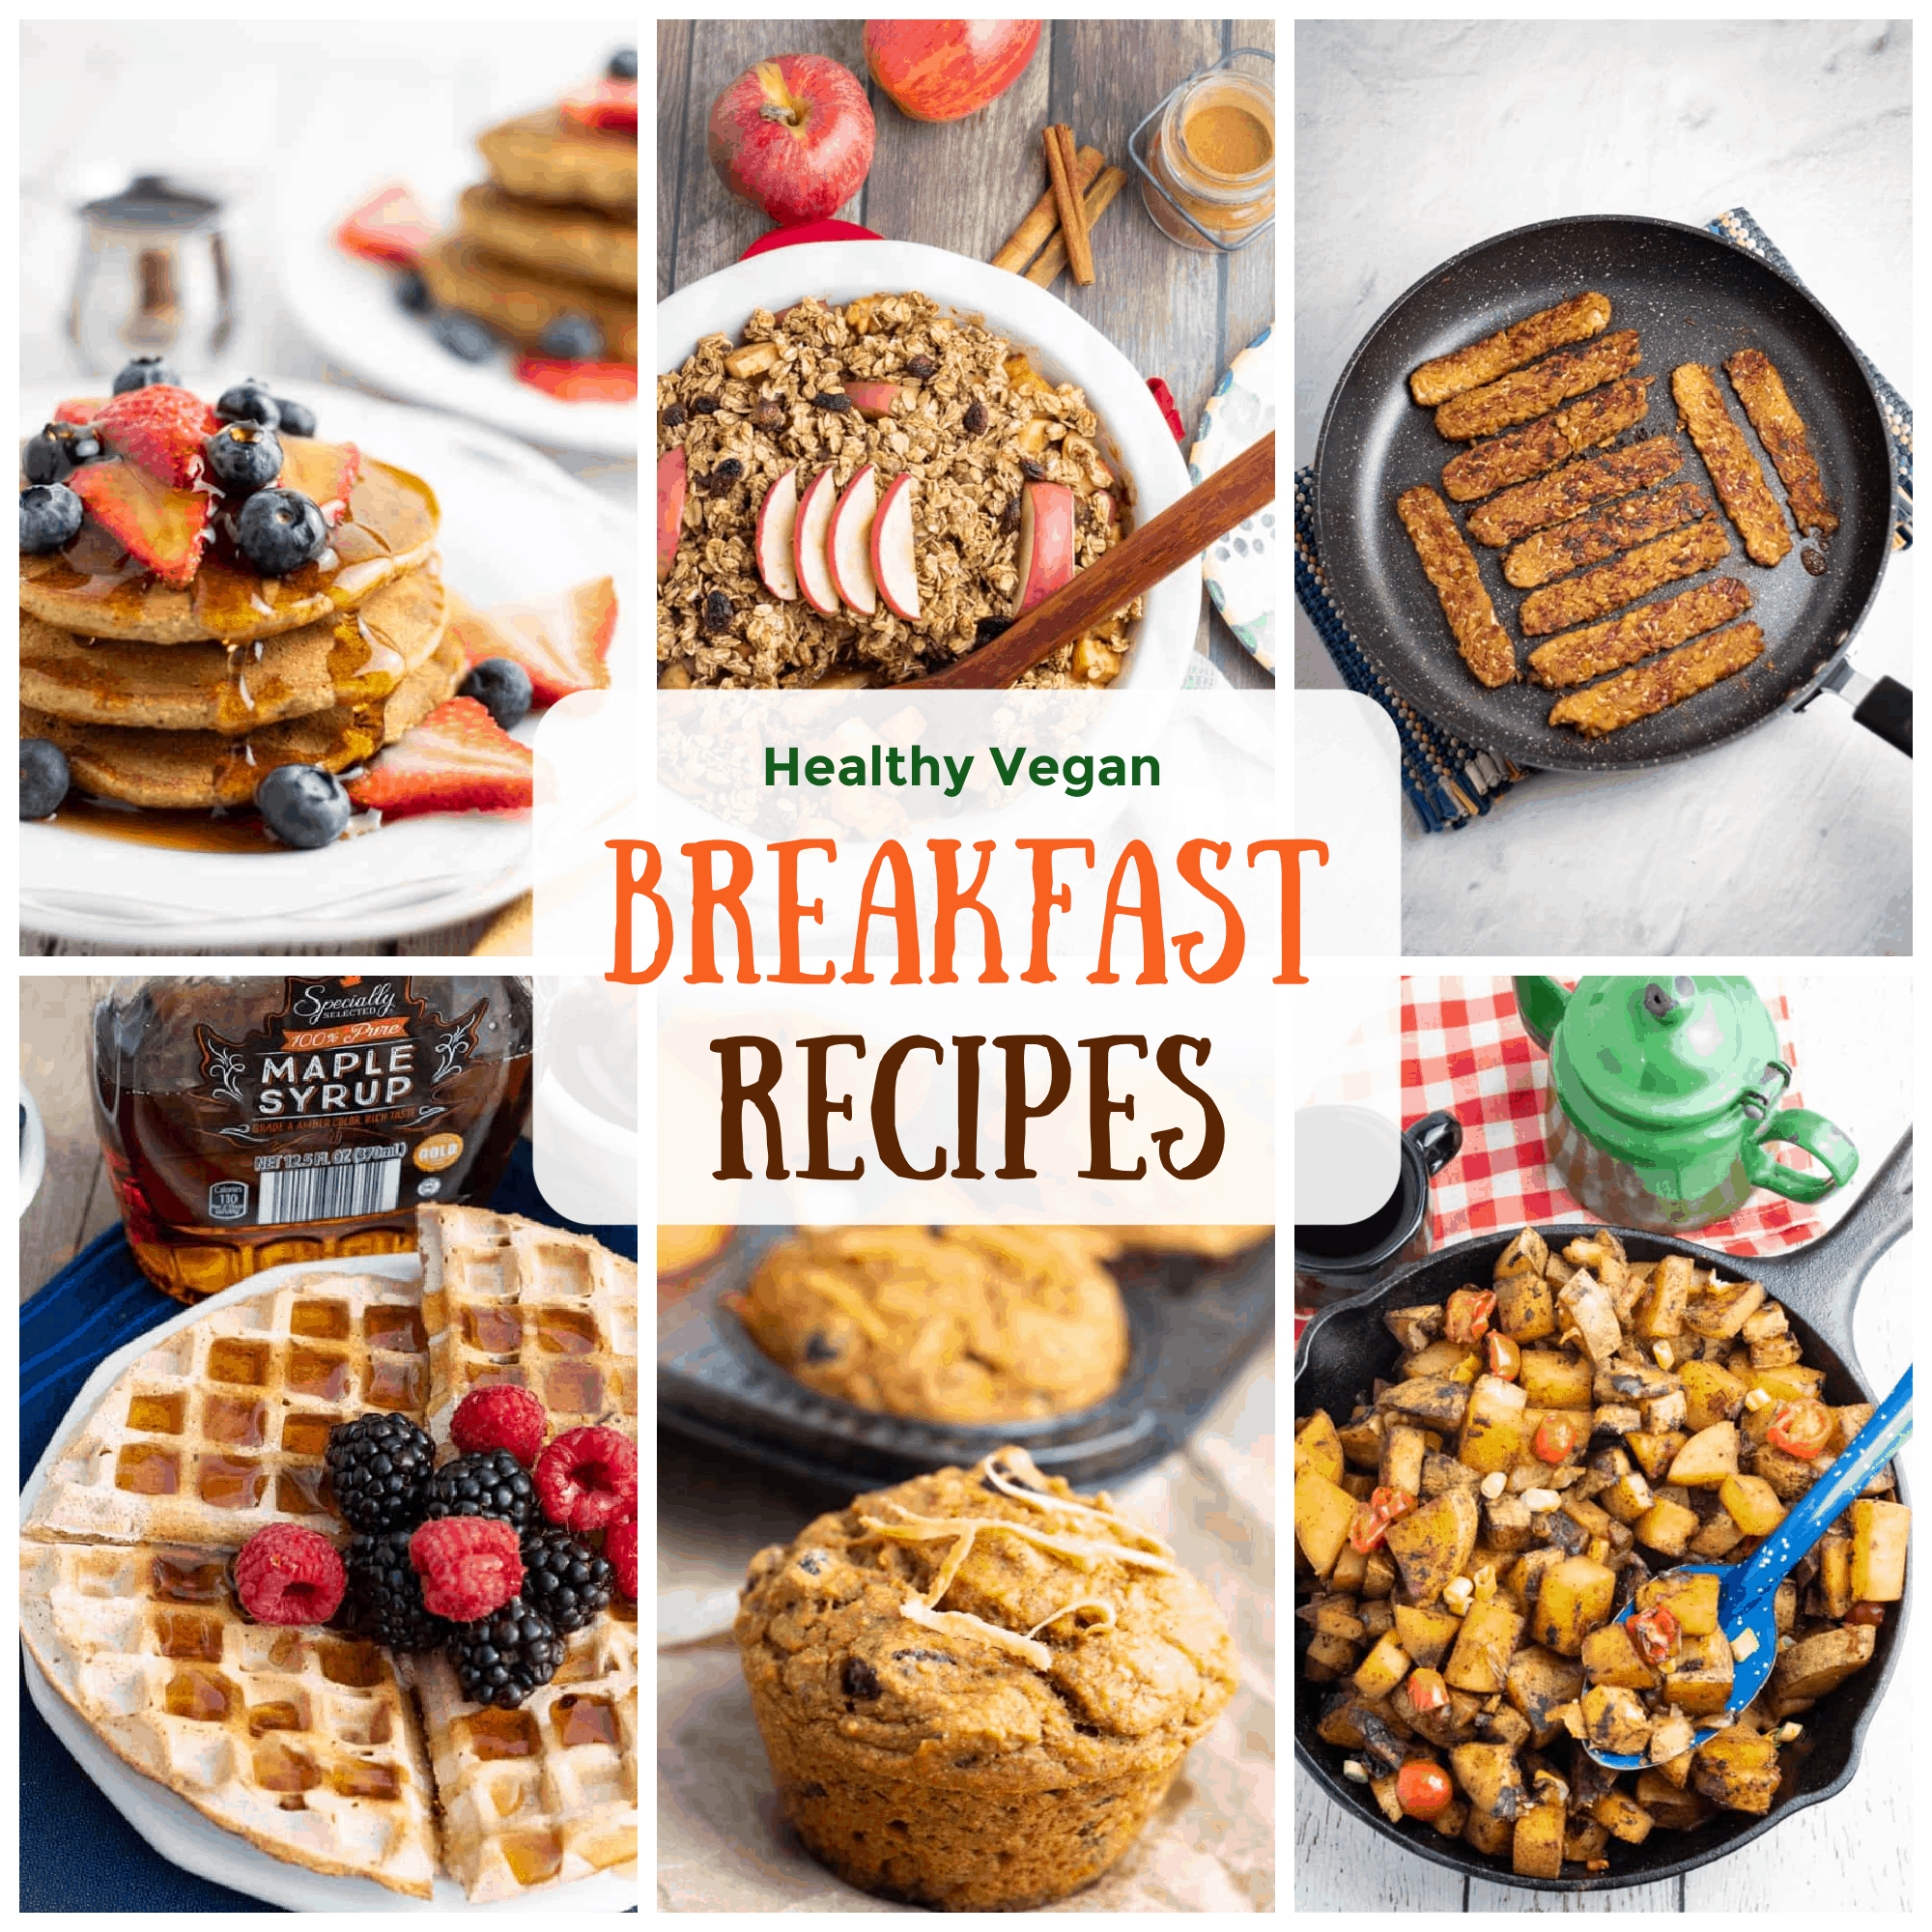 17 Healthy Vegan Breakfast Ideas Eatplant Based